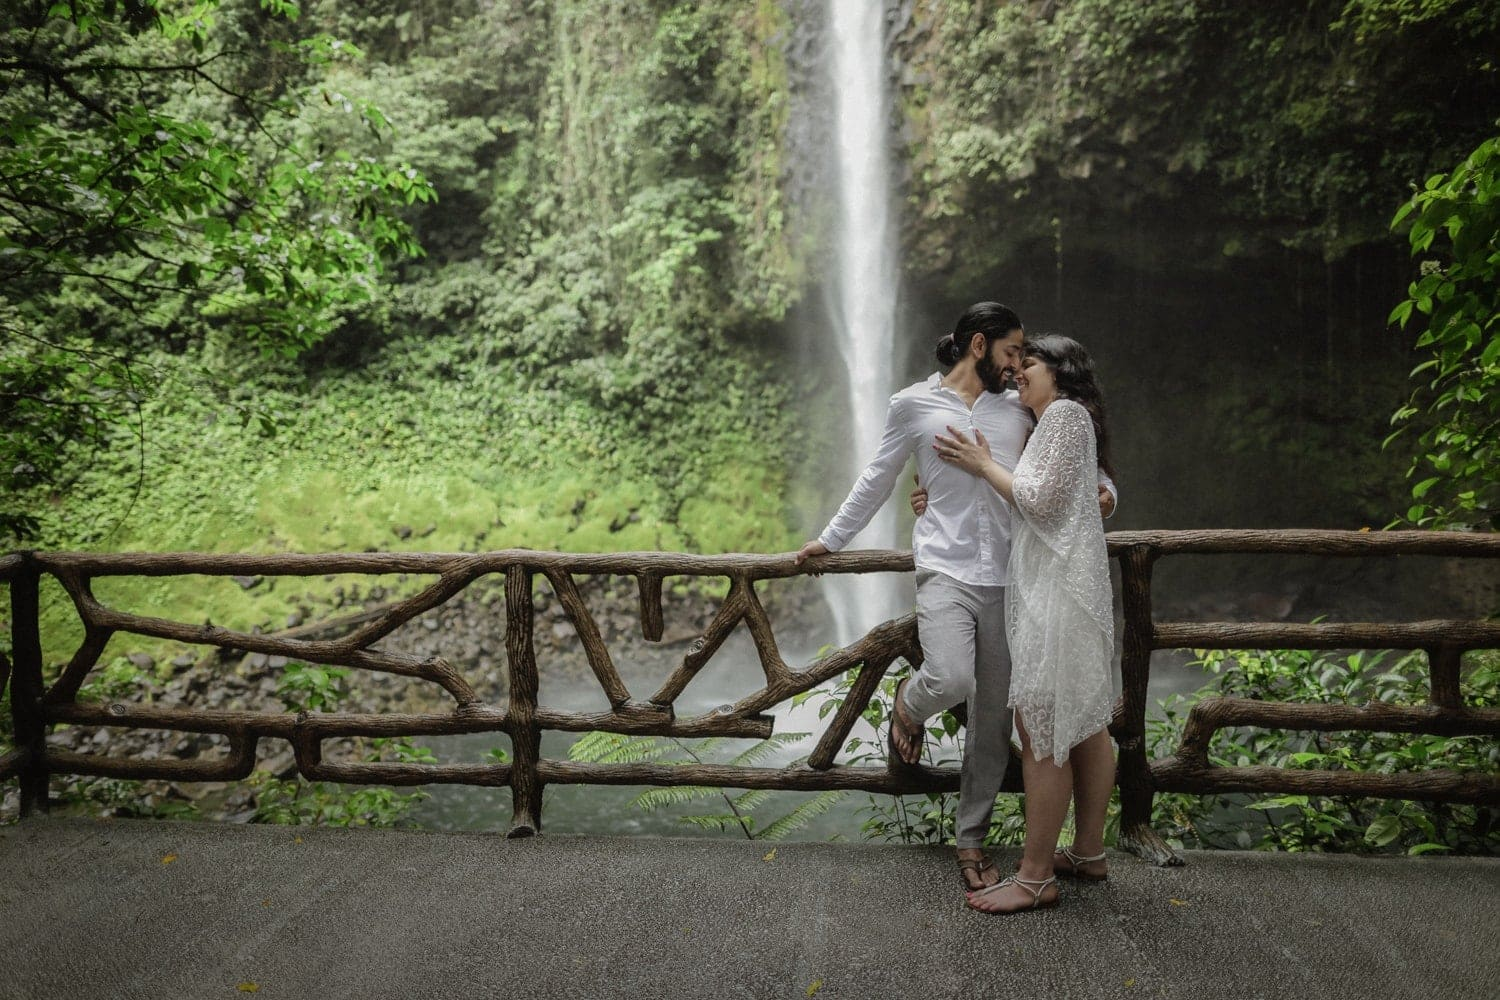 Amberene-Farhan-Engagement-Photos-La-Fortuna-Waterfall-3.jpg